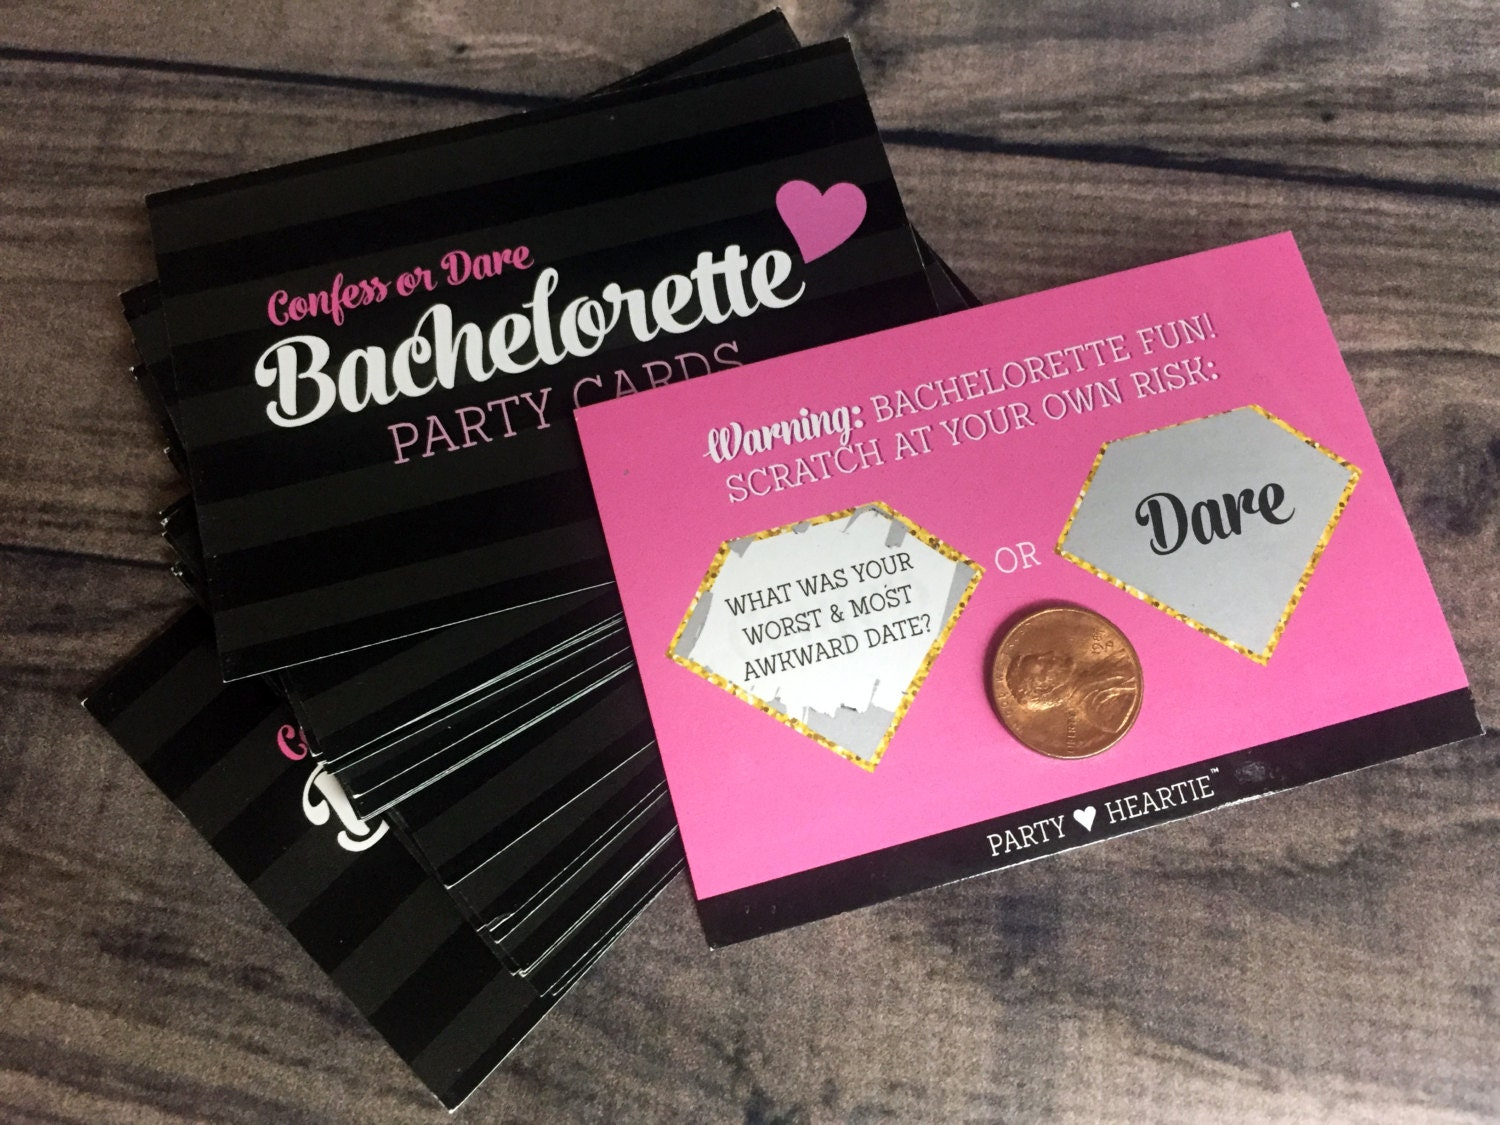 Aug 2018 Bachelorette Confess or Dare Party Game | Etsy